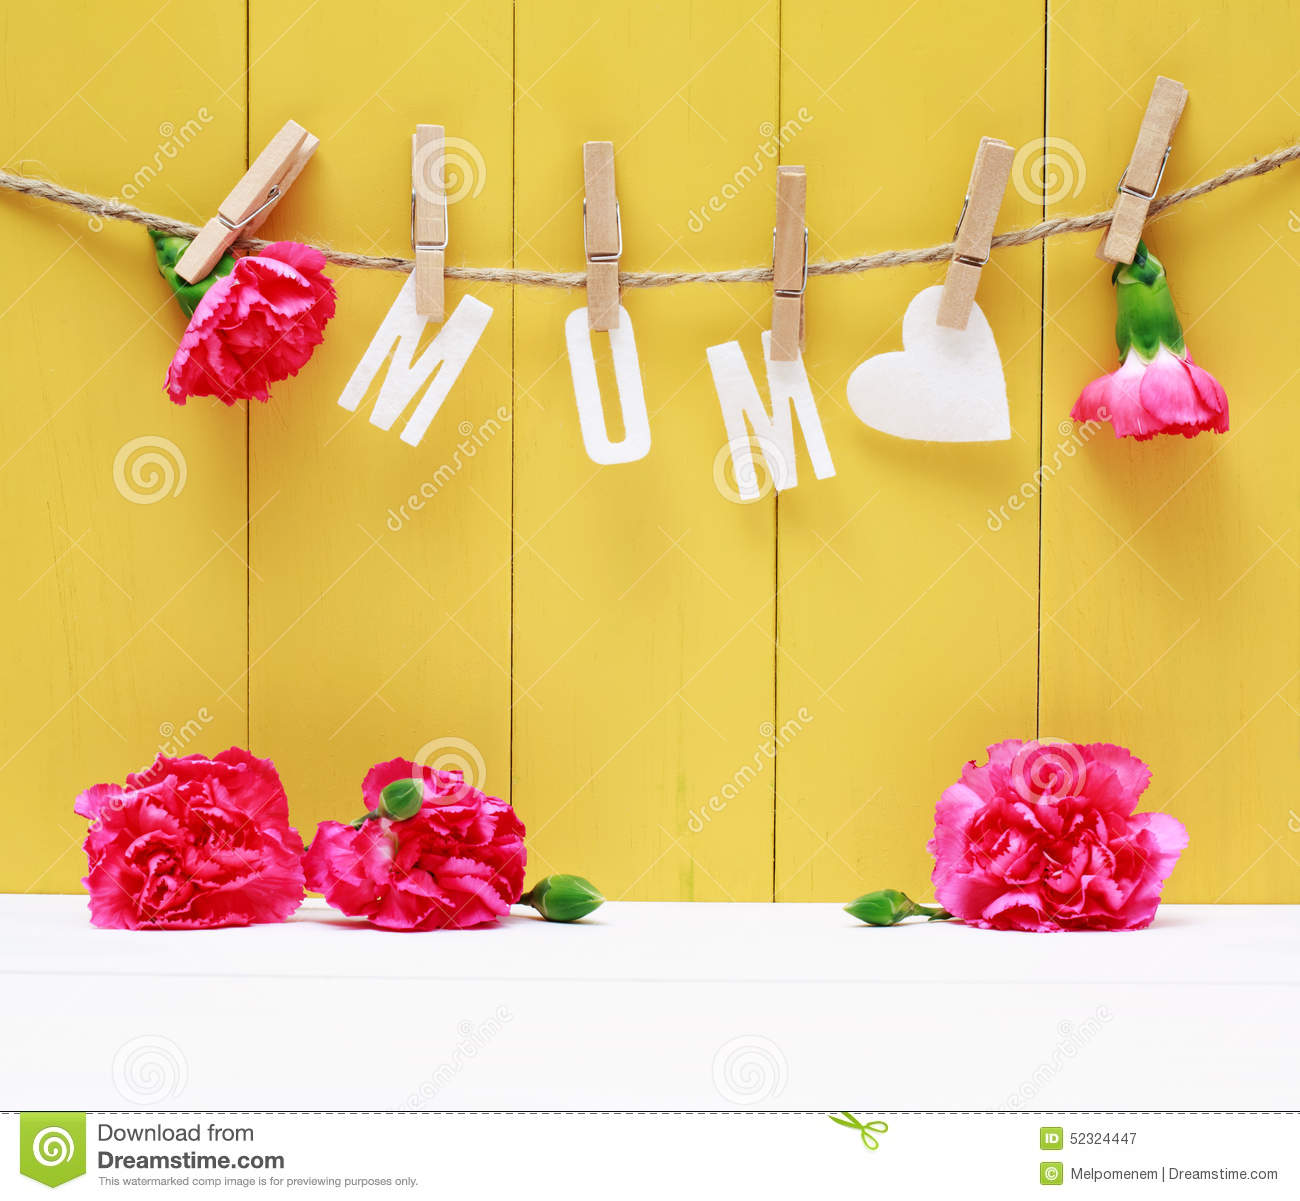 Hanging MOM Letters With Carnation Flowers Stock Image - Image of ...